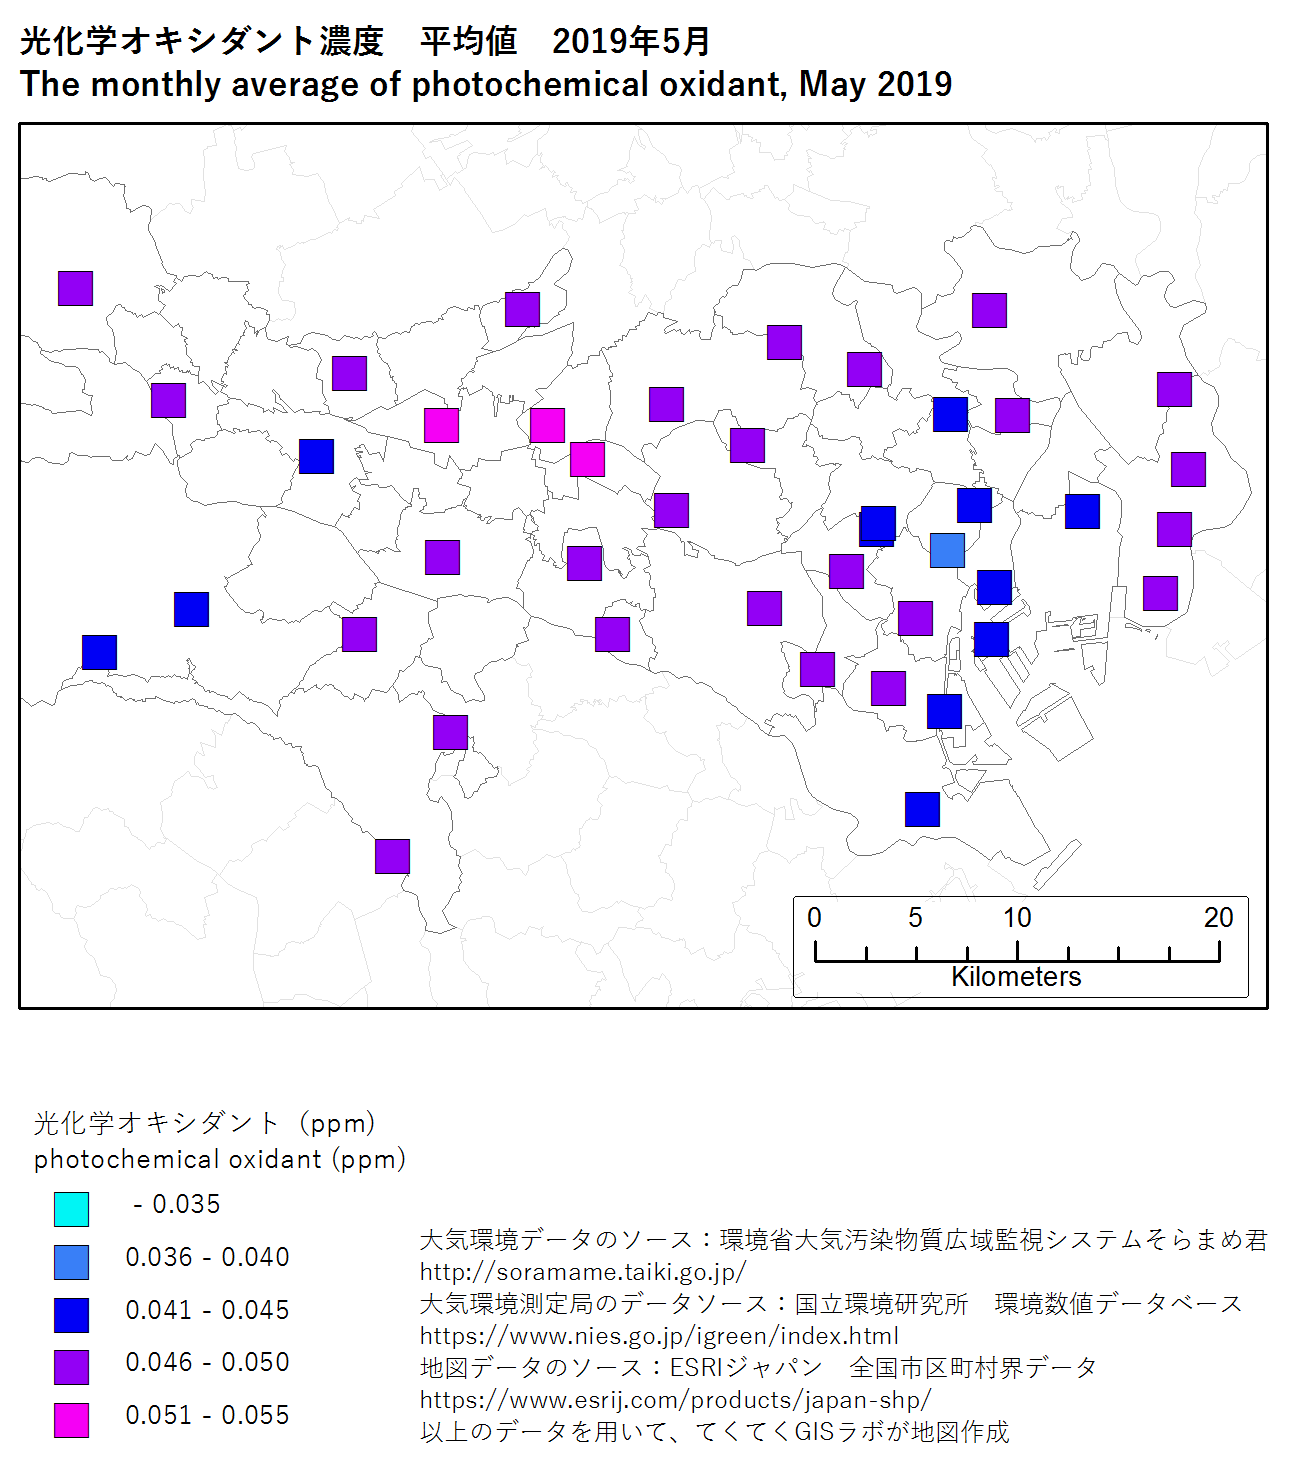 photochromic oxidant map (average) of Tokyo, May 2019